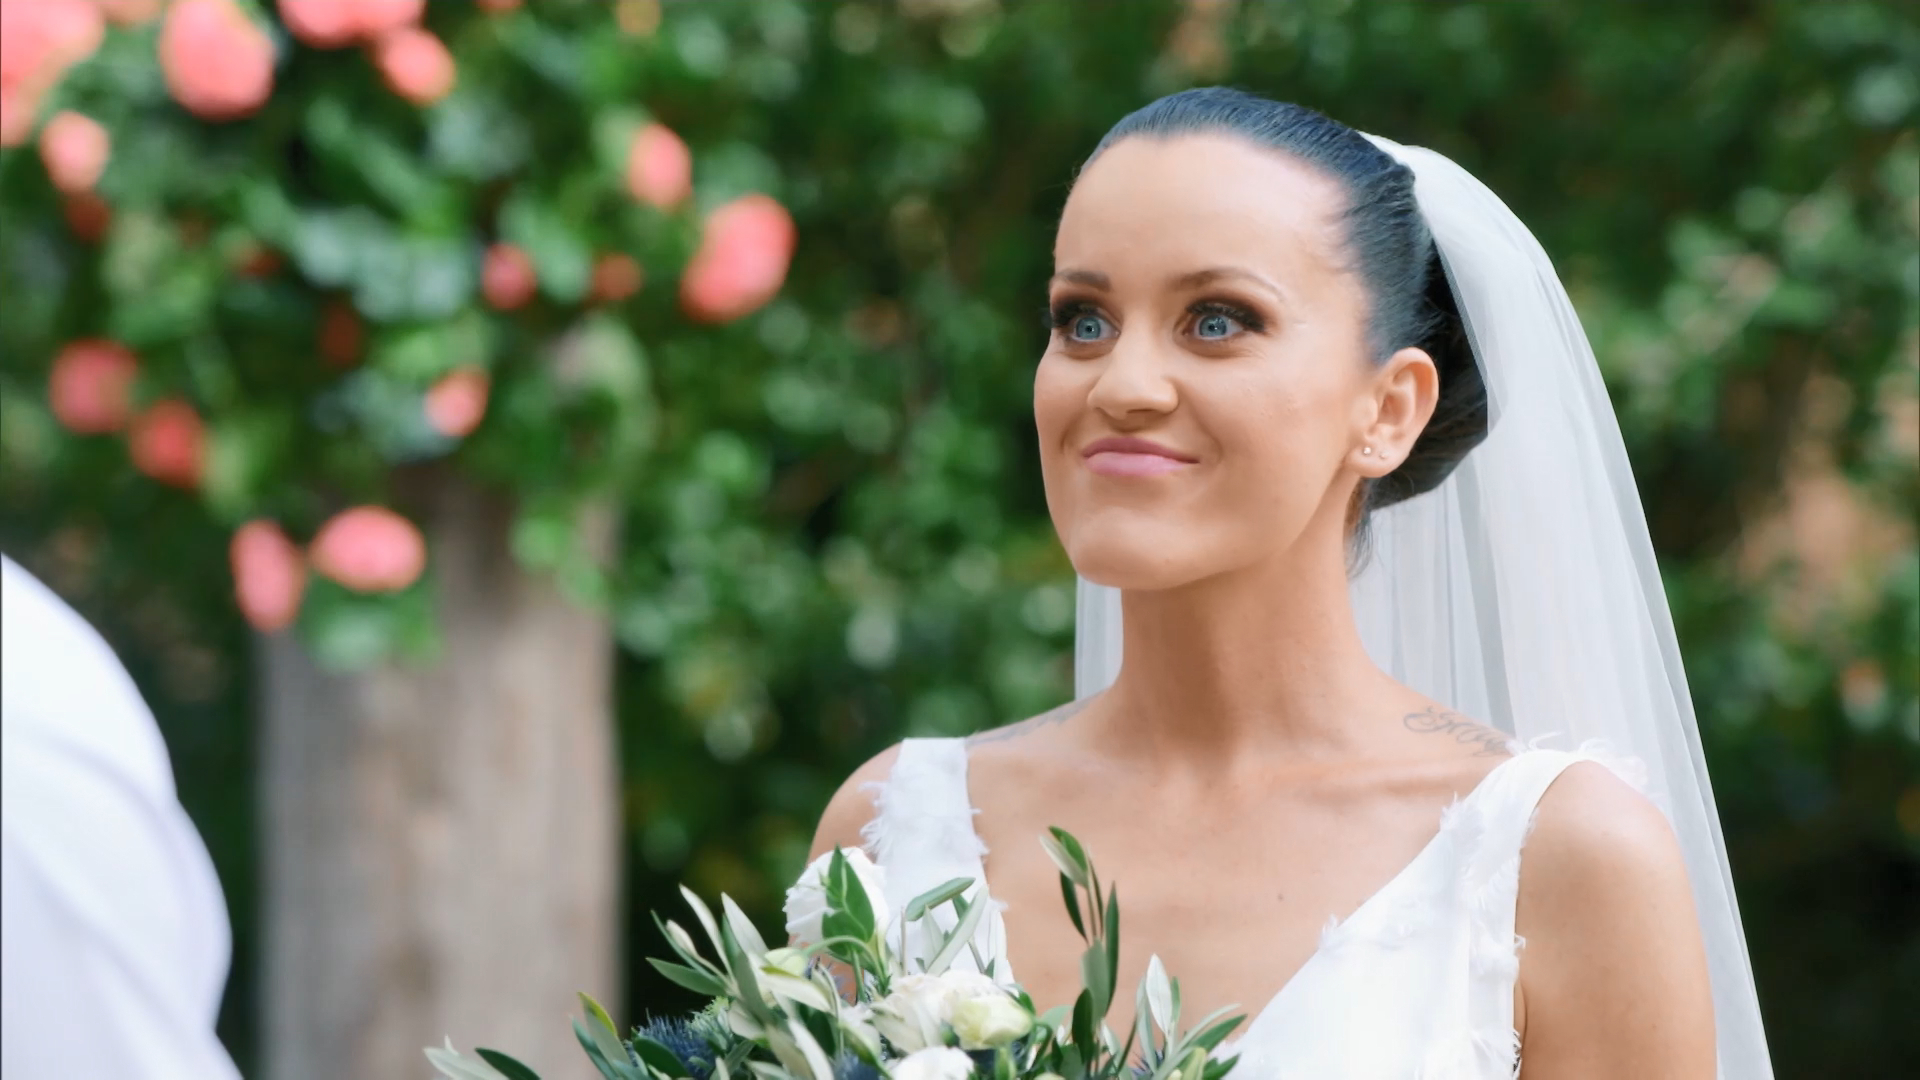 Relive the most awkward moments from the weddings